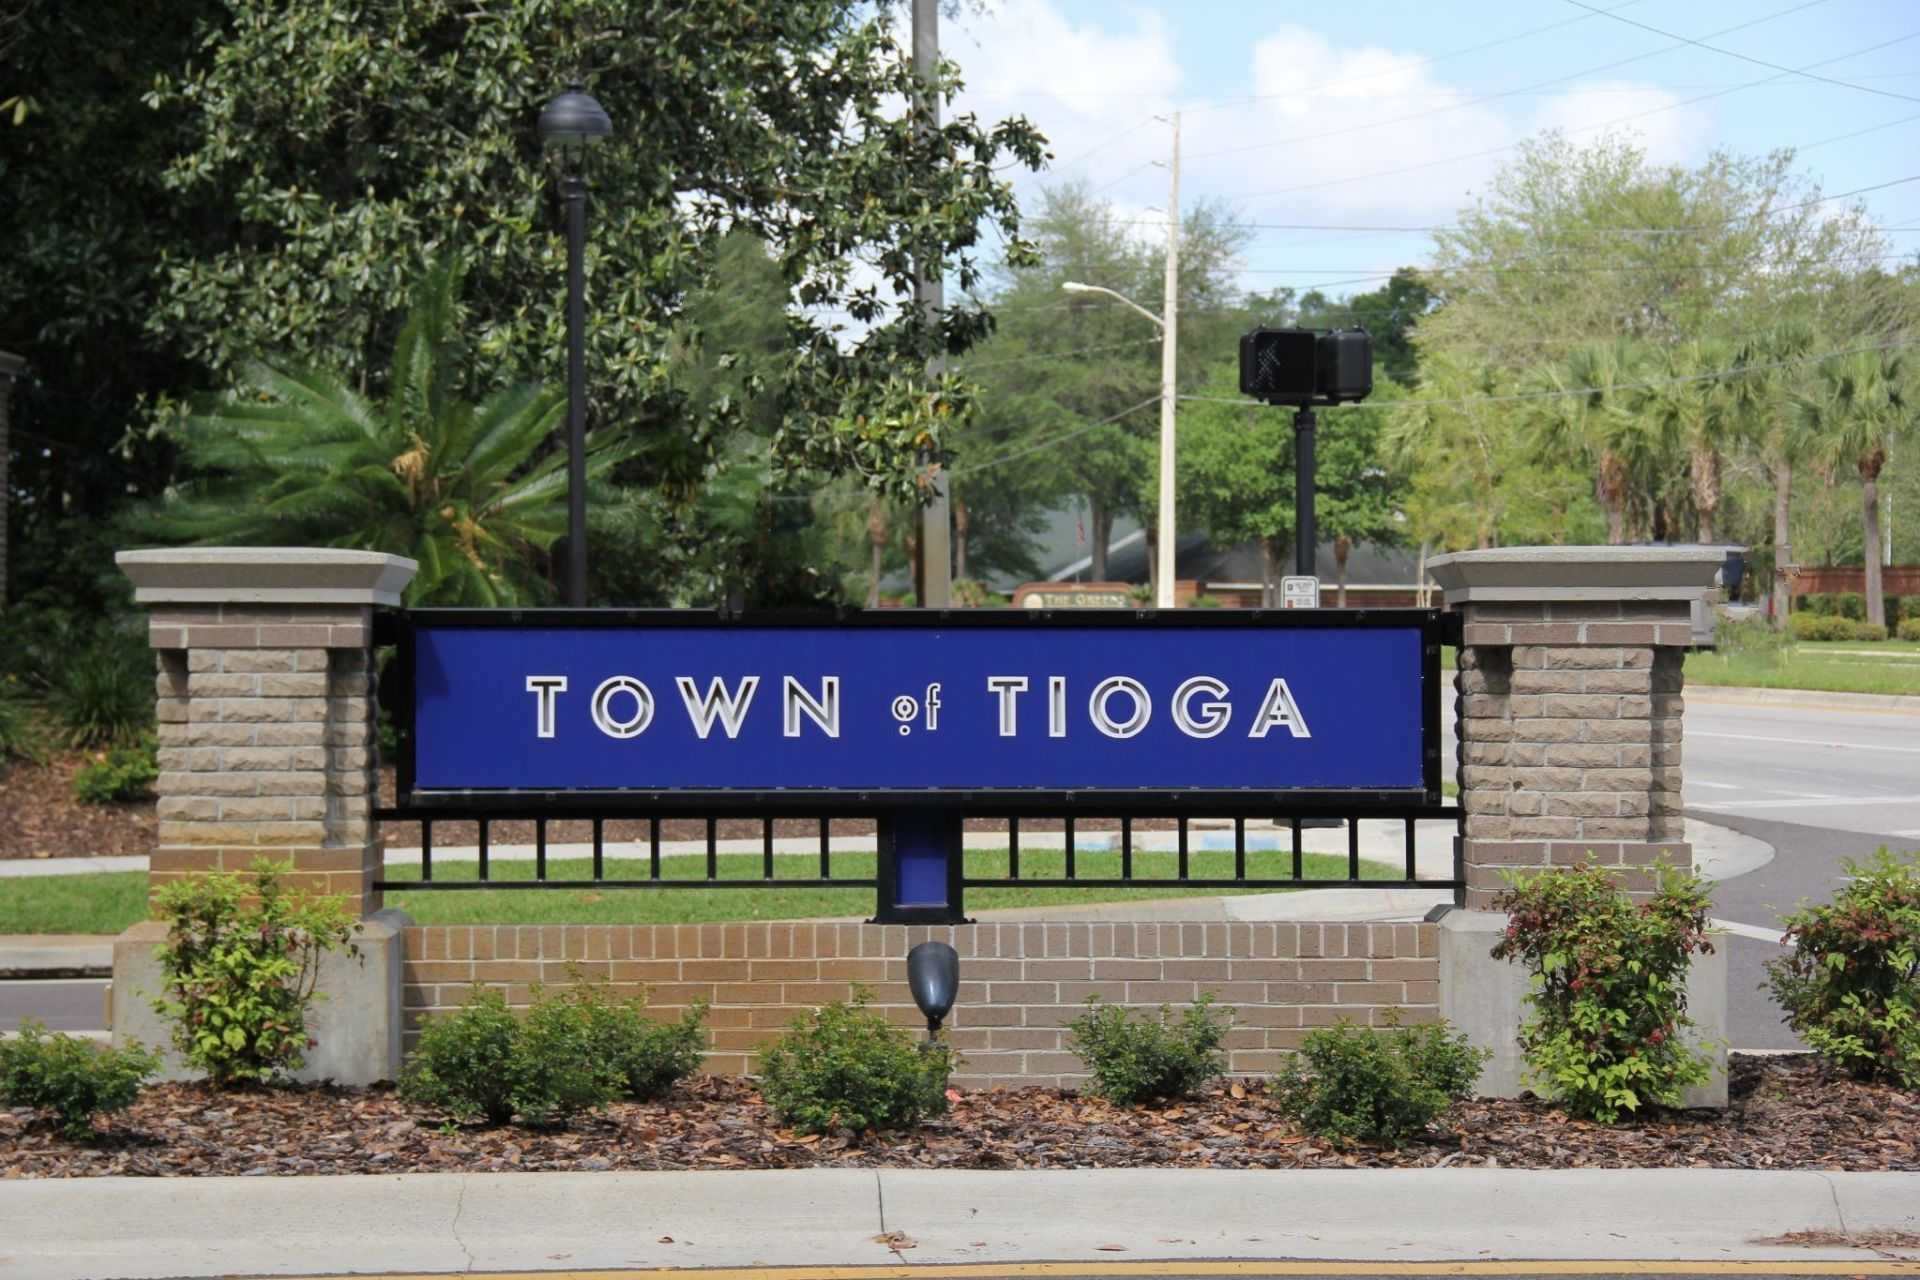 Town of Tioga